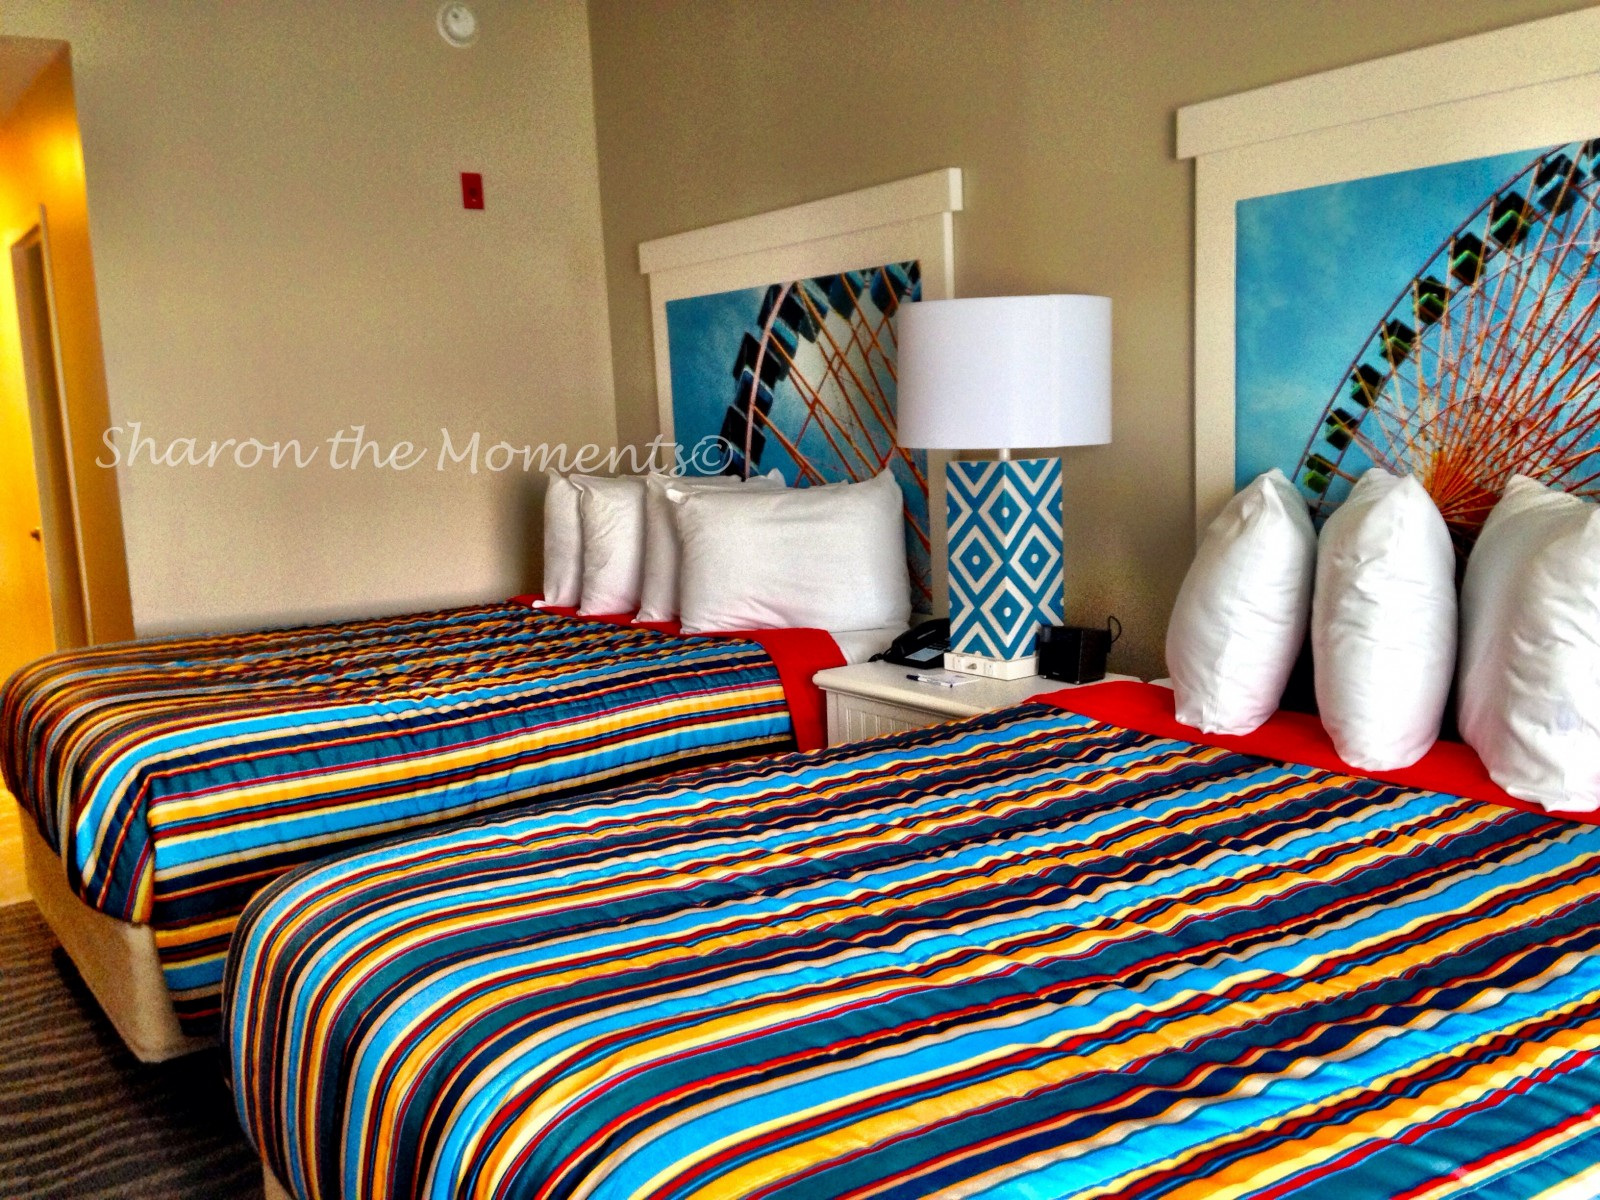 Newly Renovated Hotel Breakers at Cedar Point Ohio| Sharon the Moments Blog